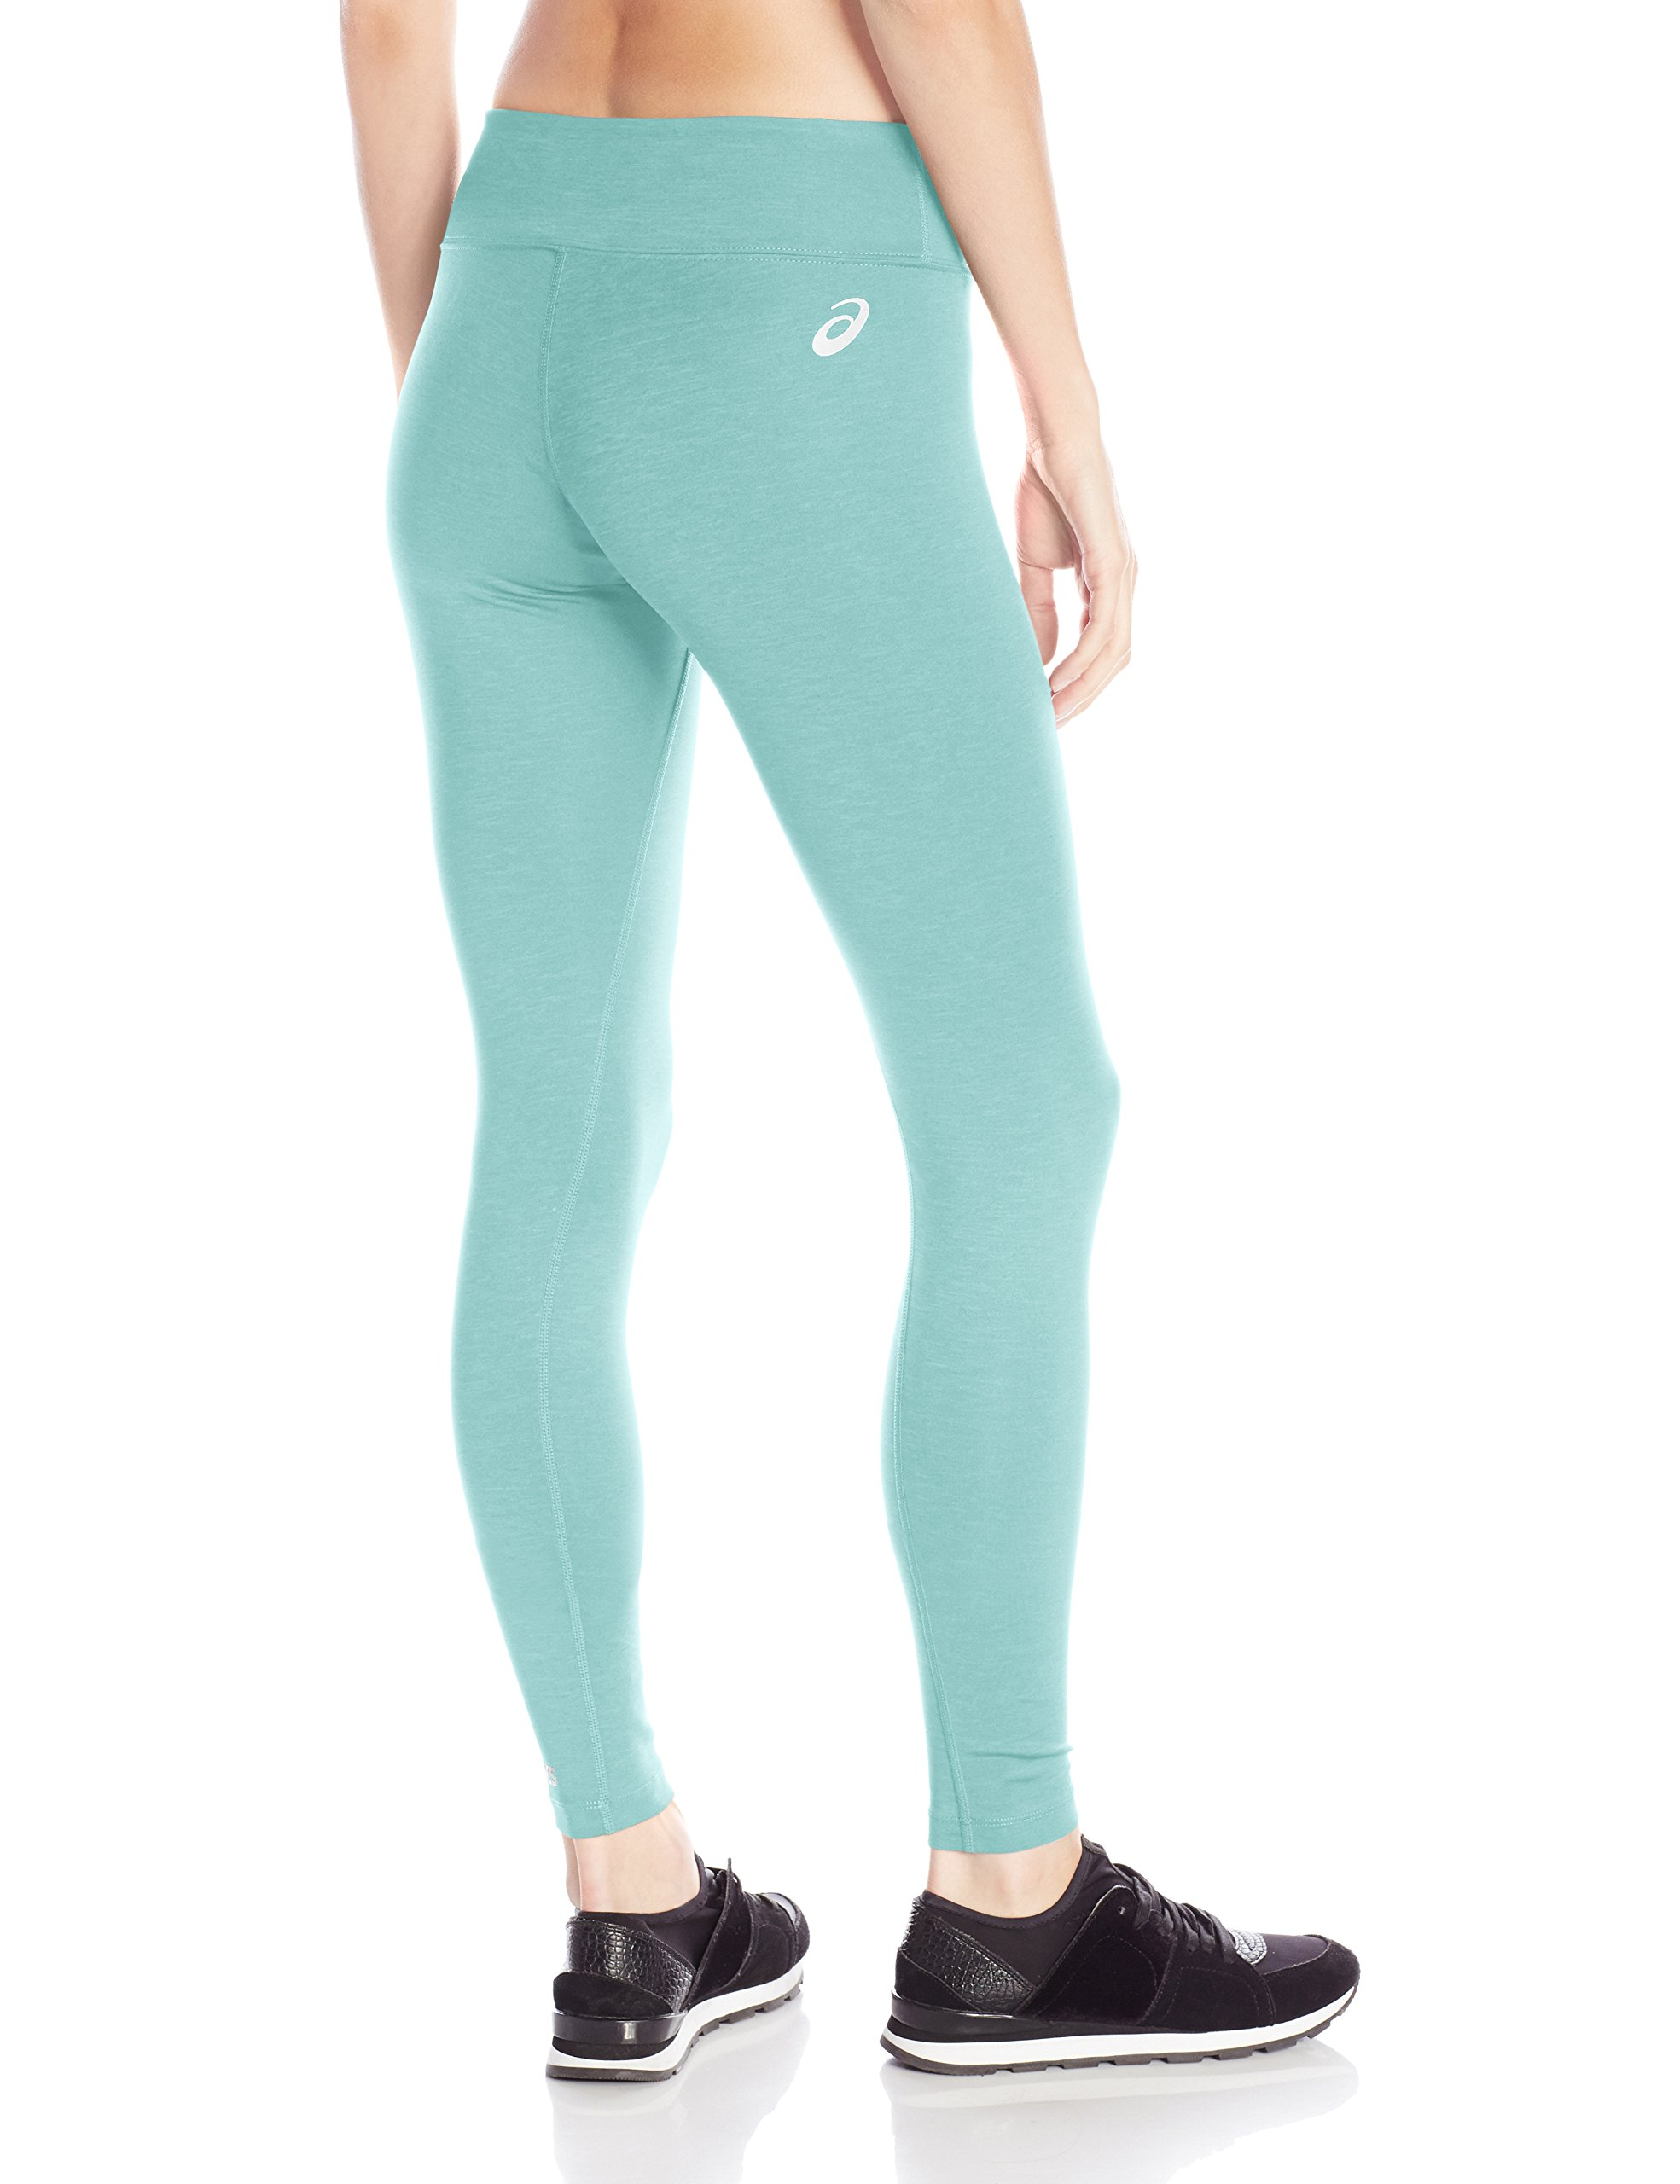 Asics-NEW-Solid-Women-039-s-Performance-Tight-Active-Leggings-Pants-58